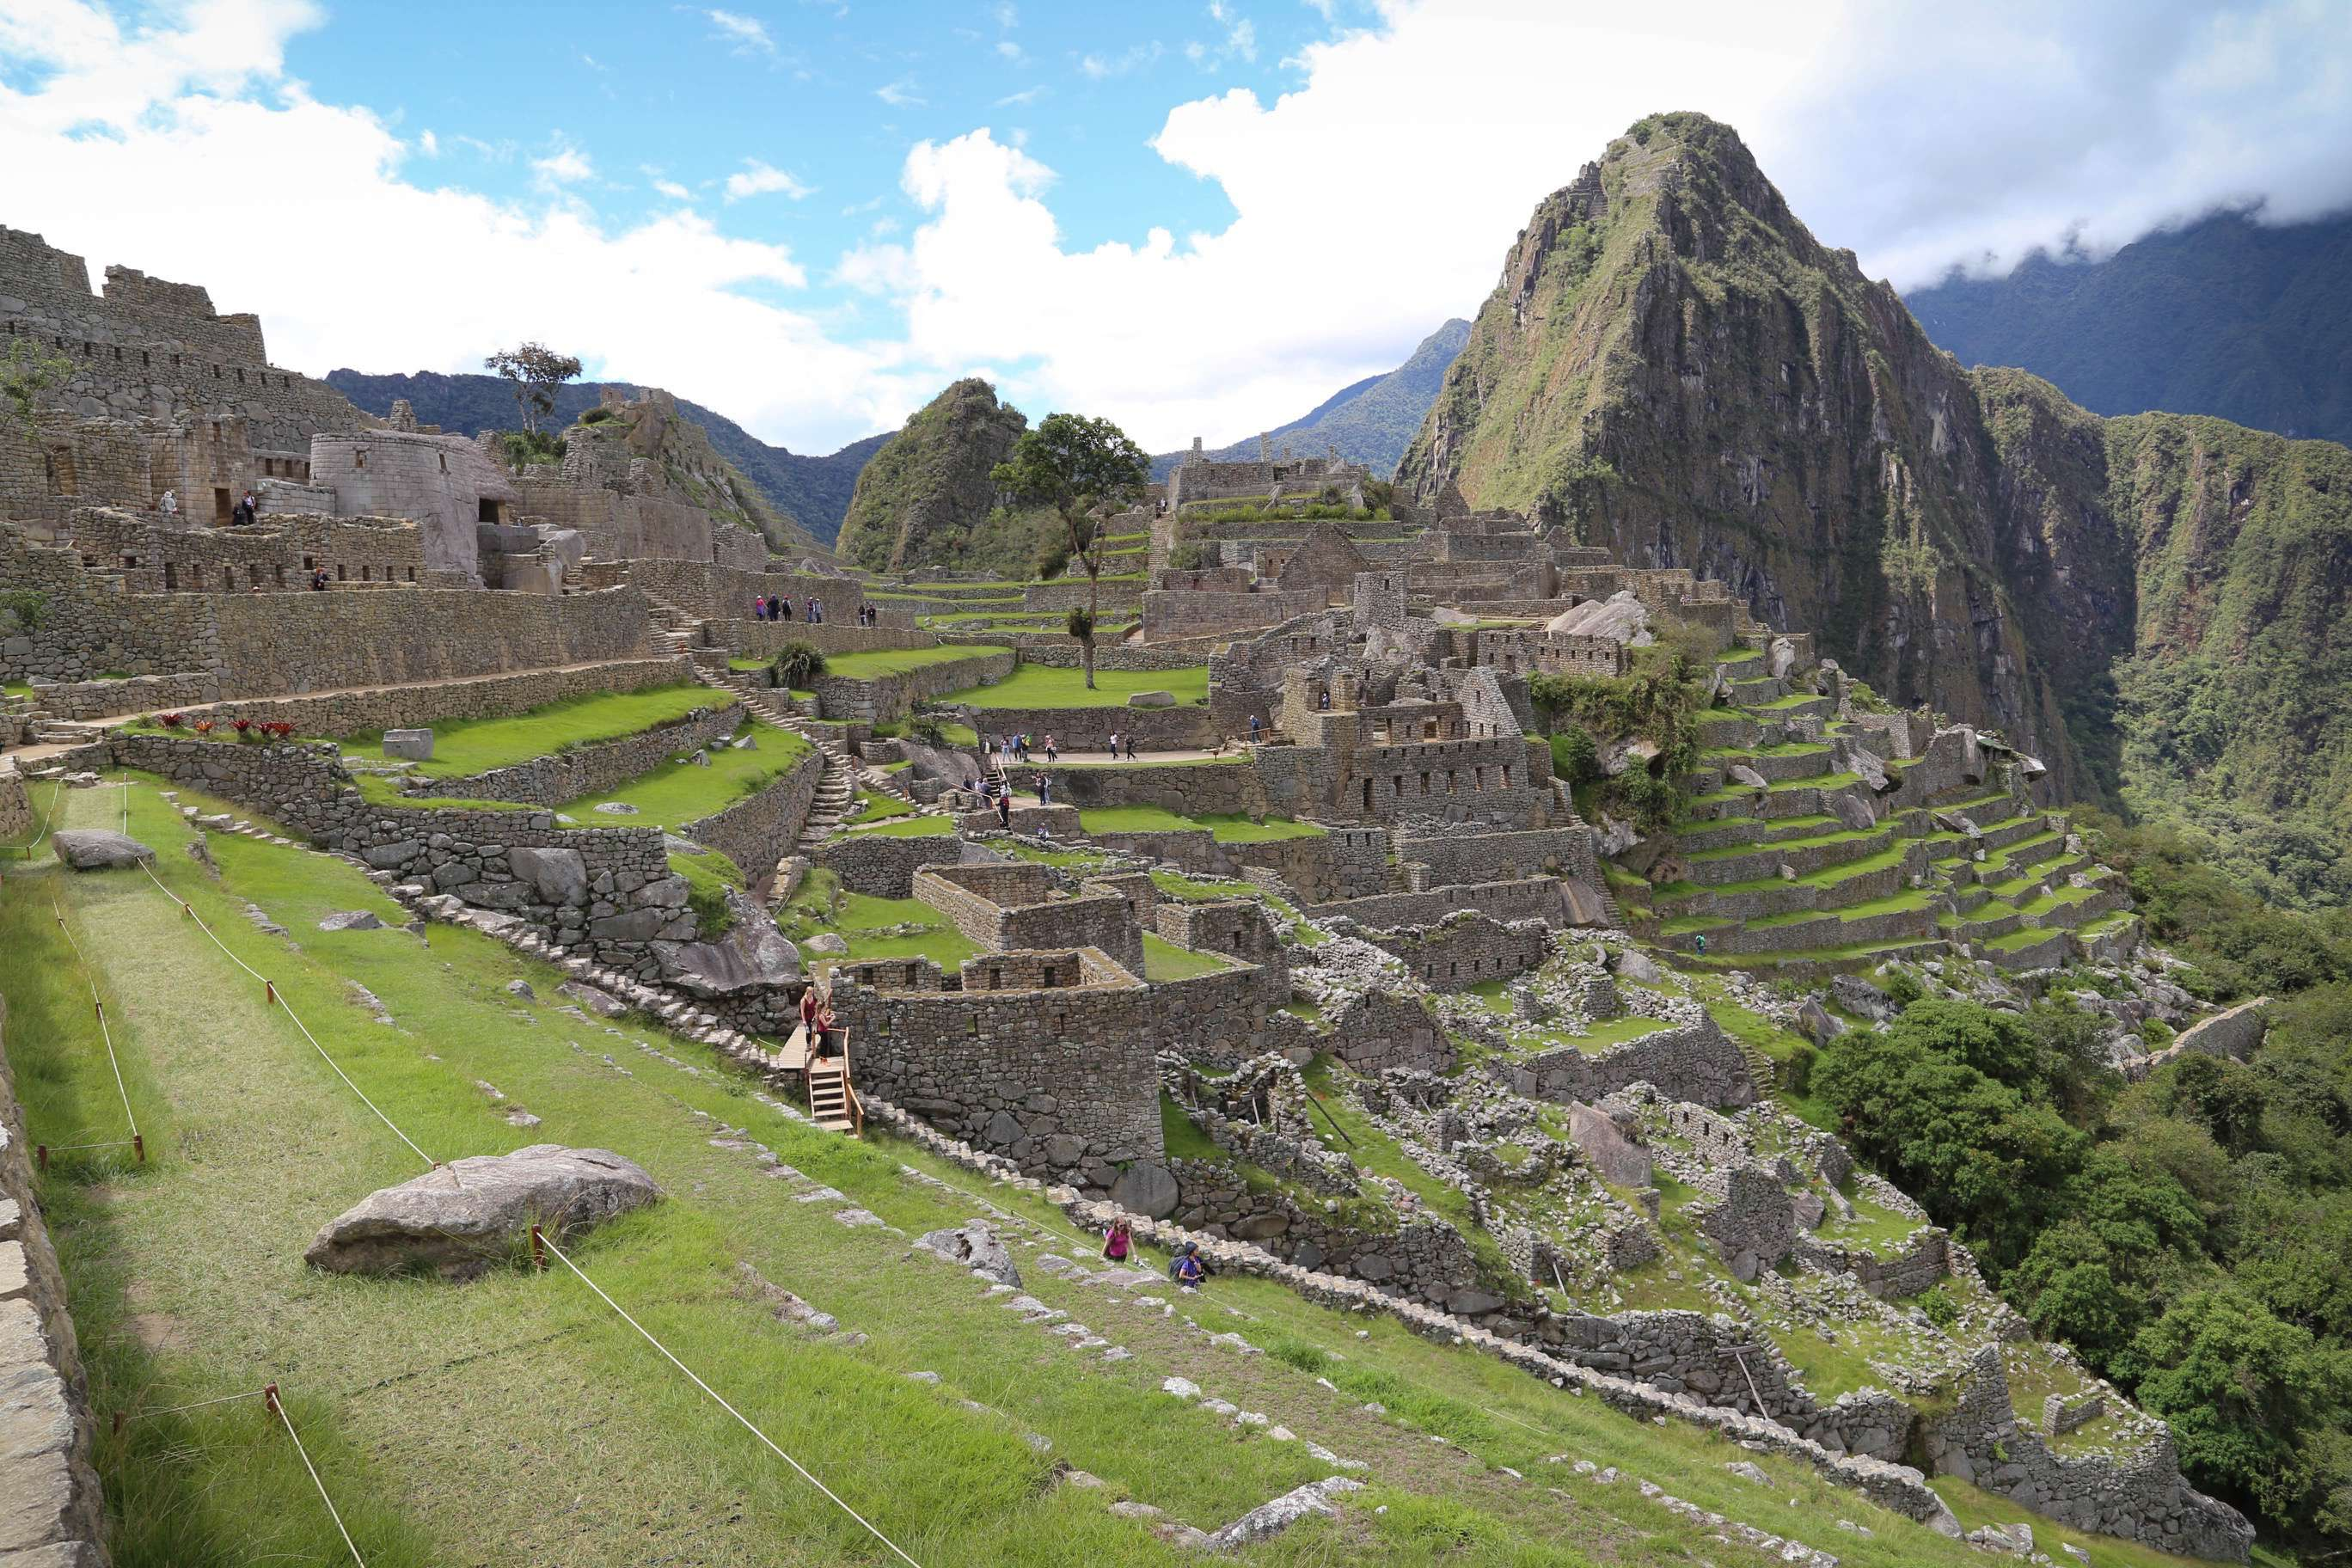 What was it like for those fortunate enough to live at Machu Picchu?